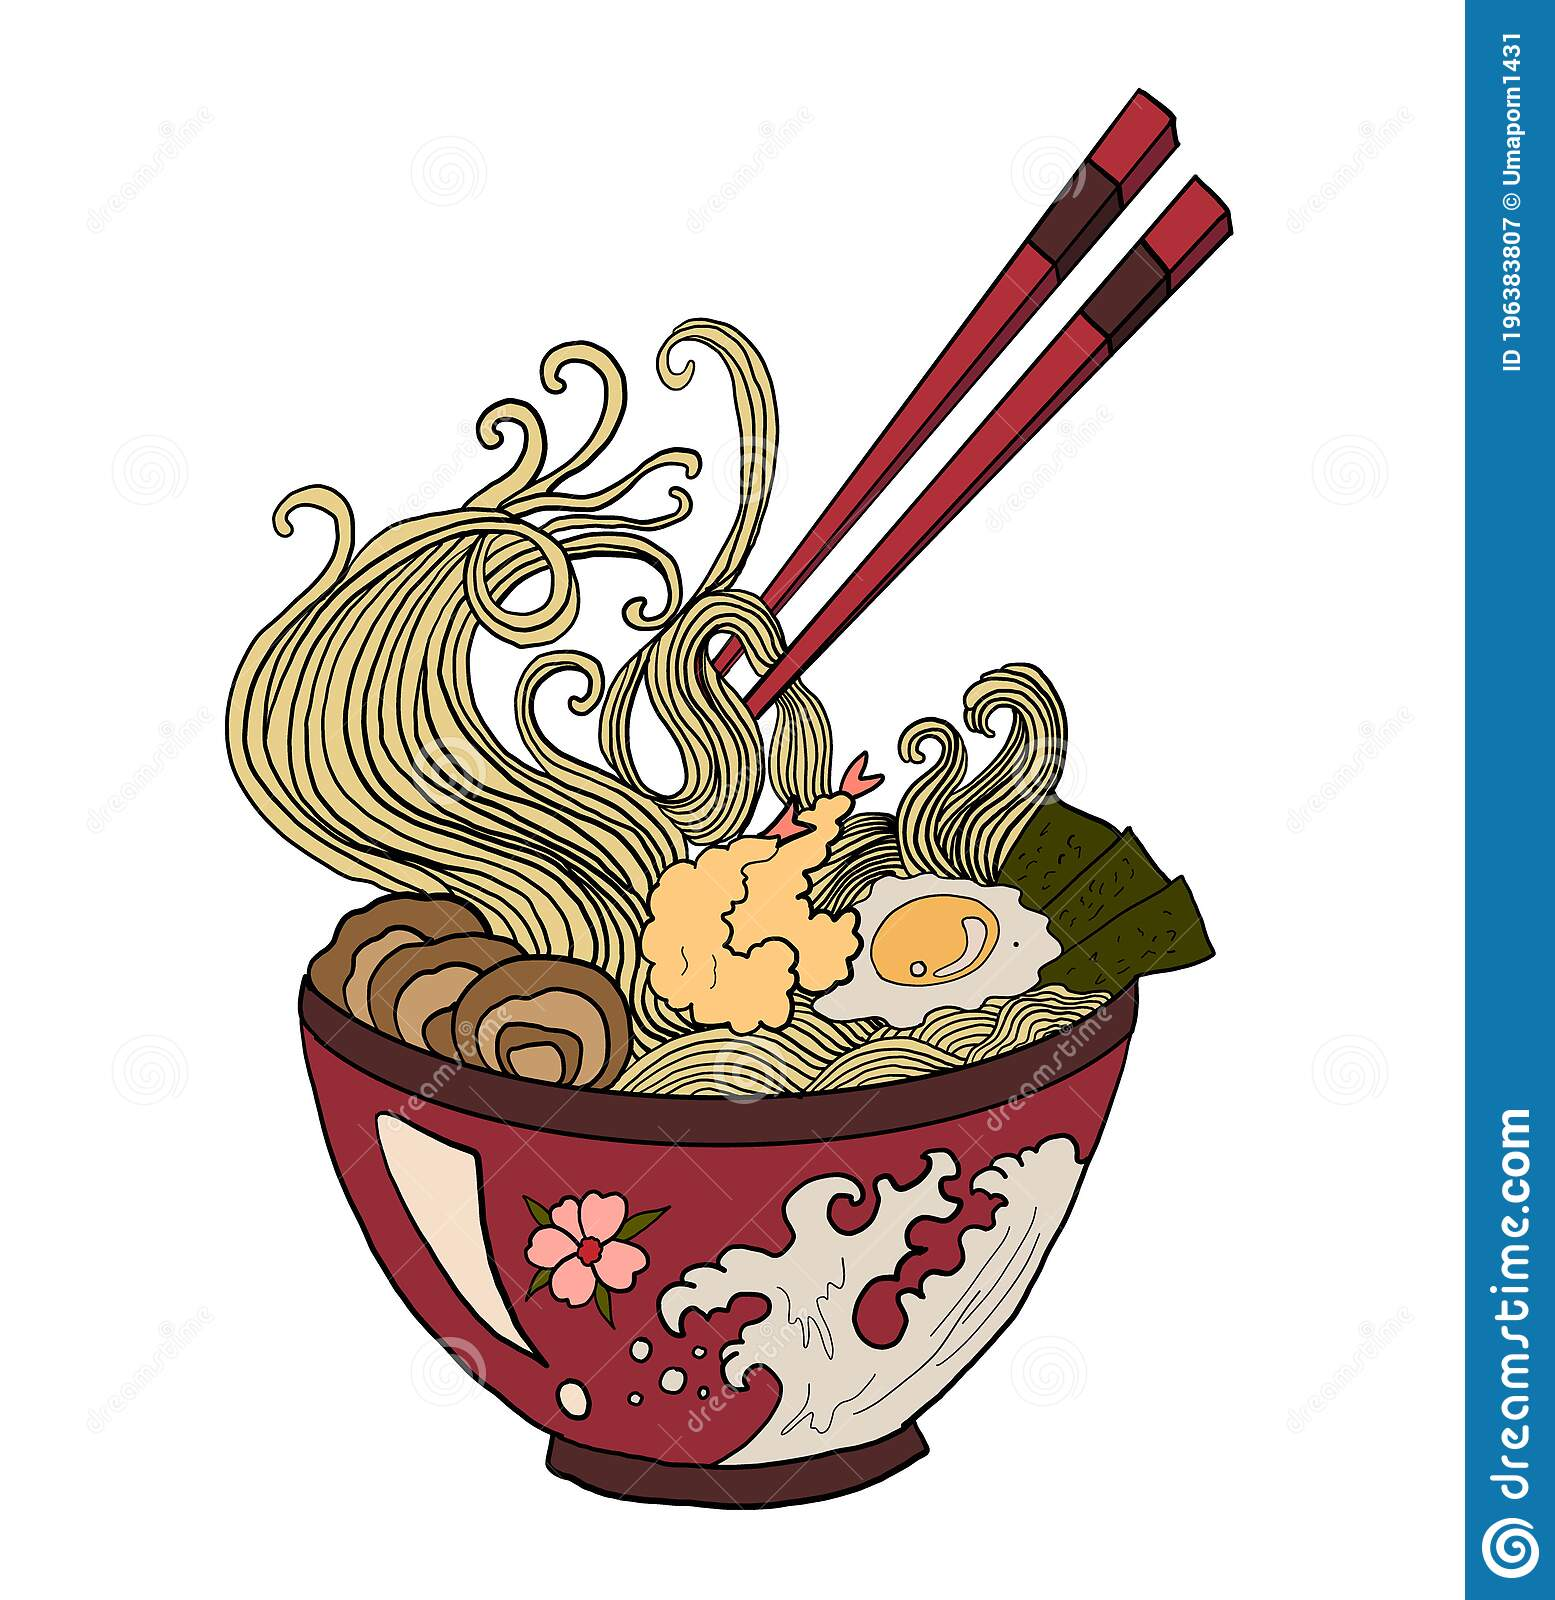 Ramen Vector Illustration For Doodle Art Stock Vector Illustration Of Noodle Graphic 196383807